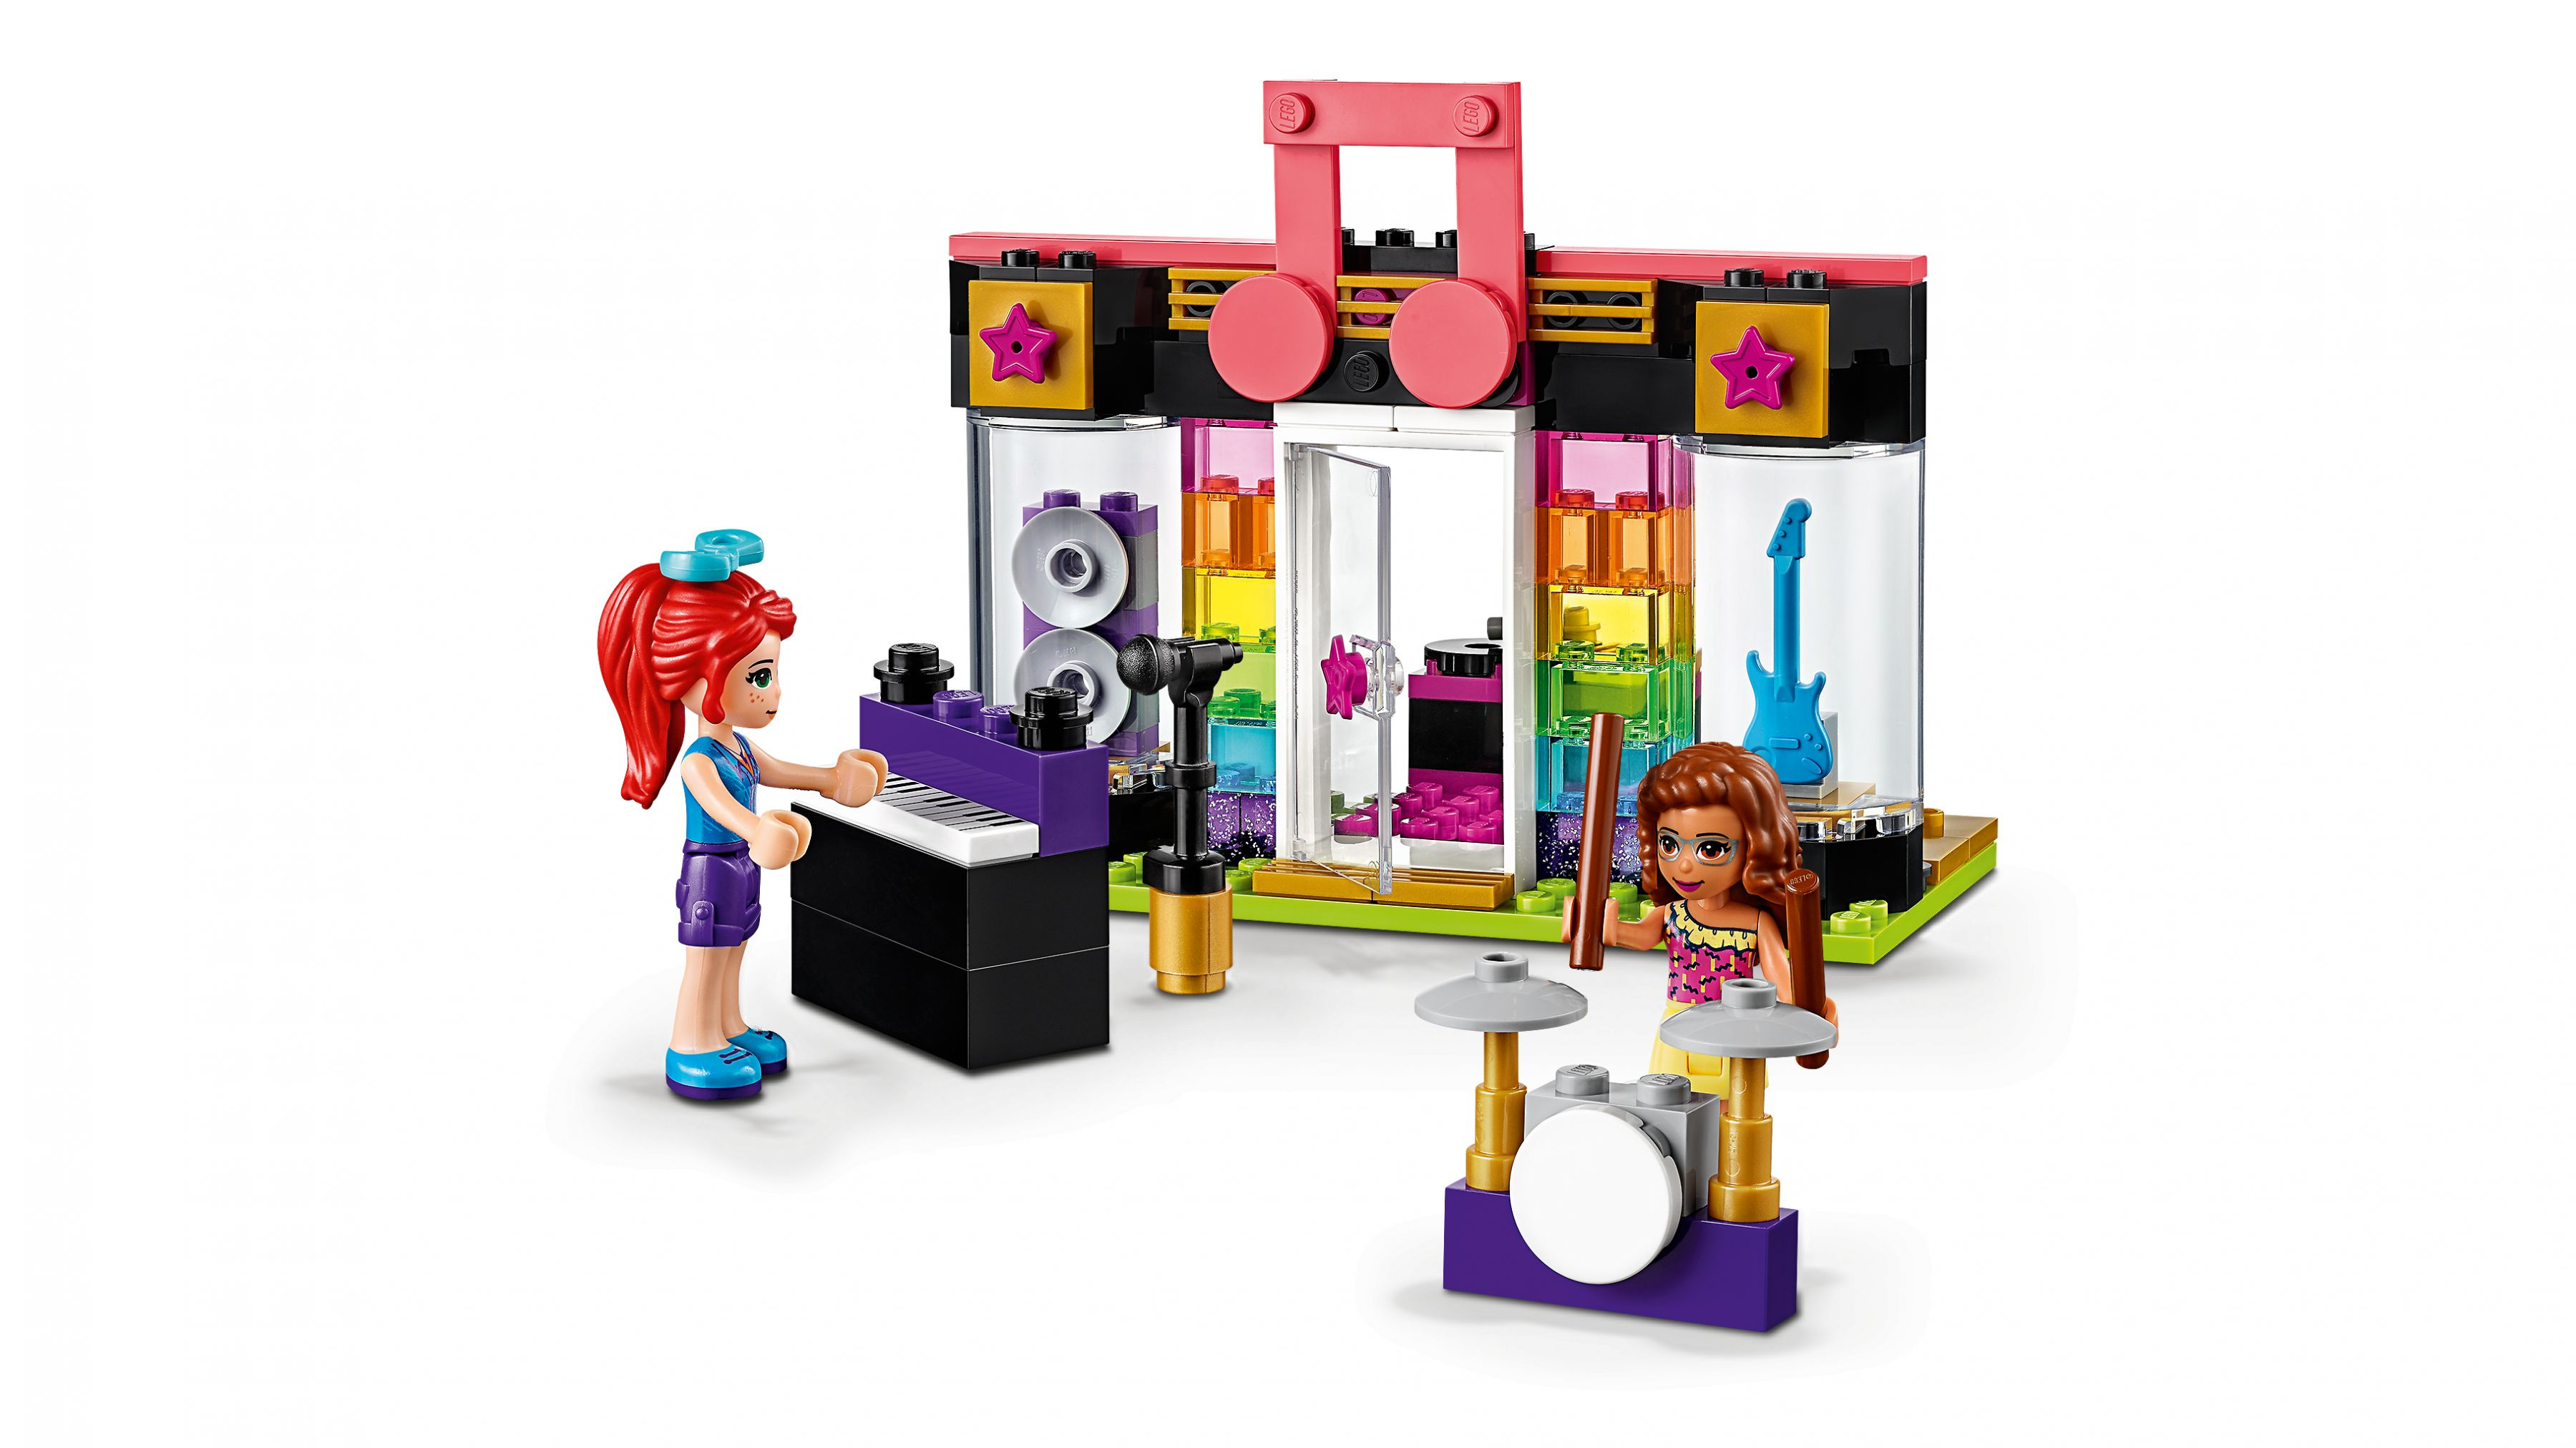 LEGO Friends 41431 Heartlake City Steinebox LEGO_41431_alt5.jpg